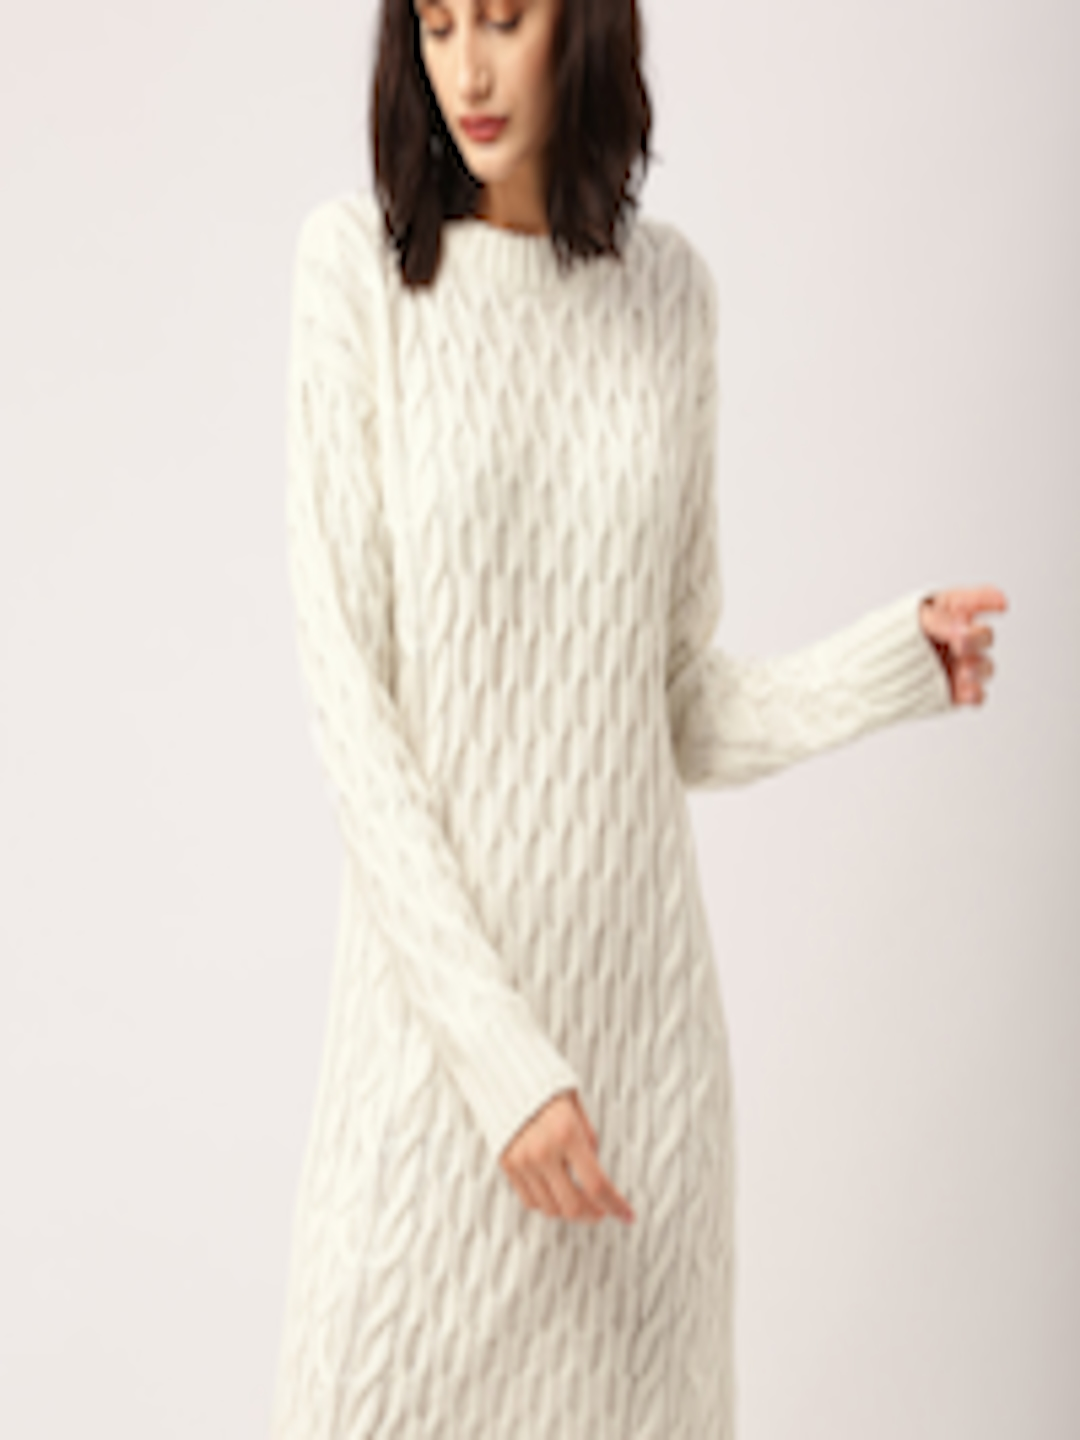 ad73e0a8a07d Buy All About You From Deepika Padukone Women White Patterned Sweater Dress  - Dresses for Women 1853858